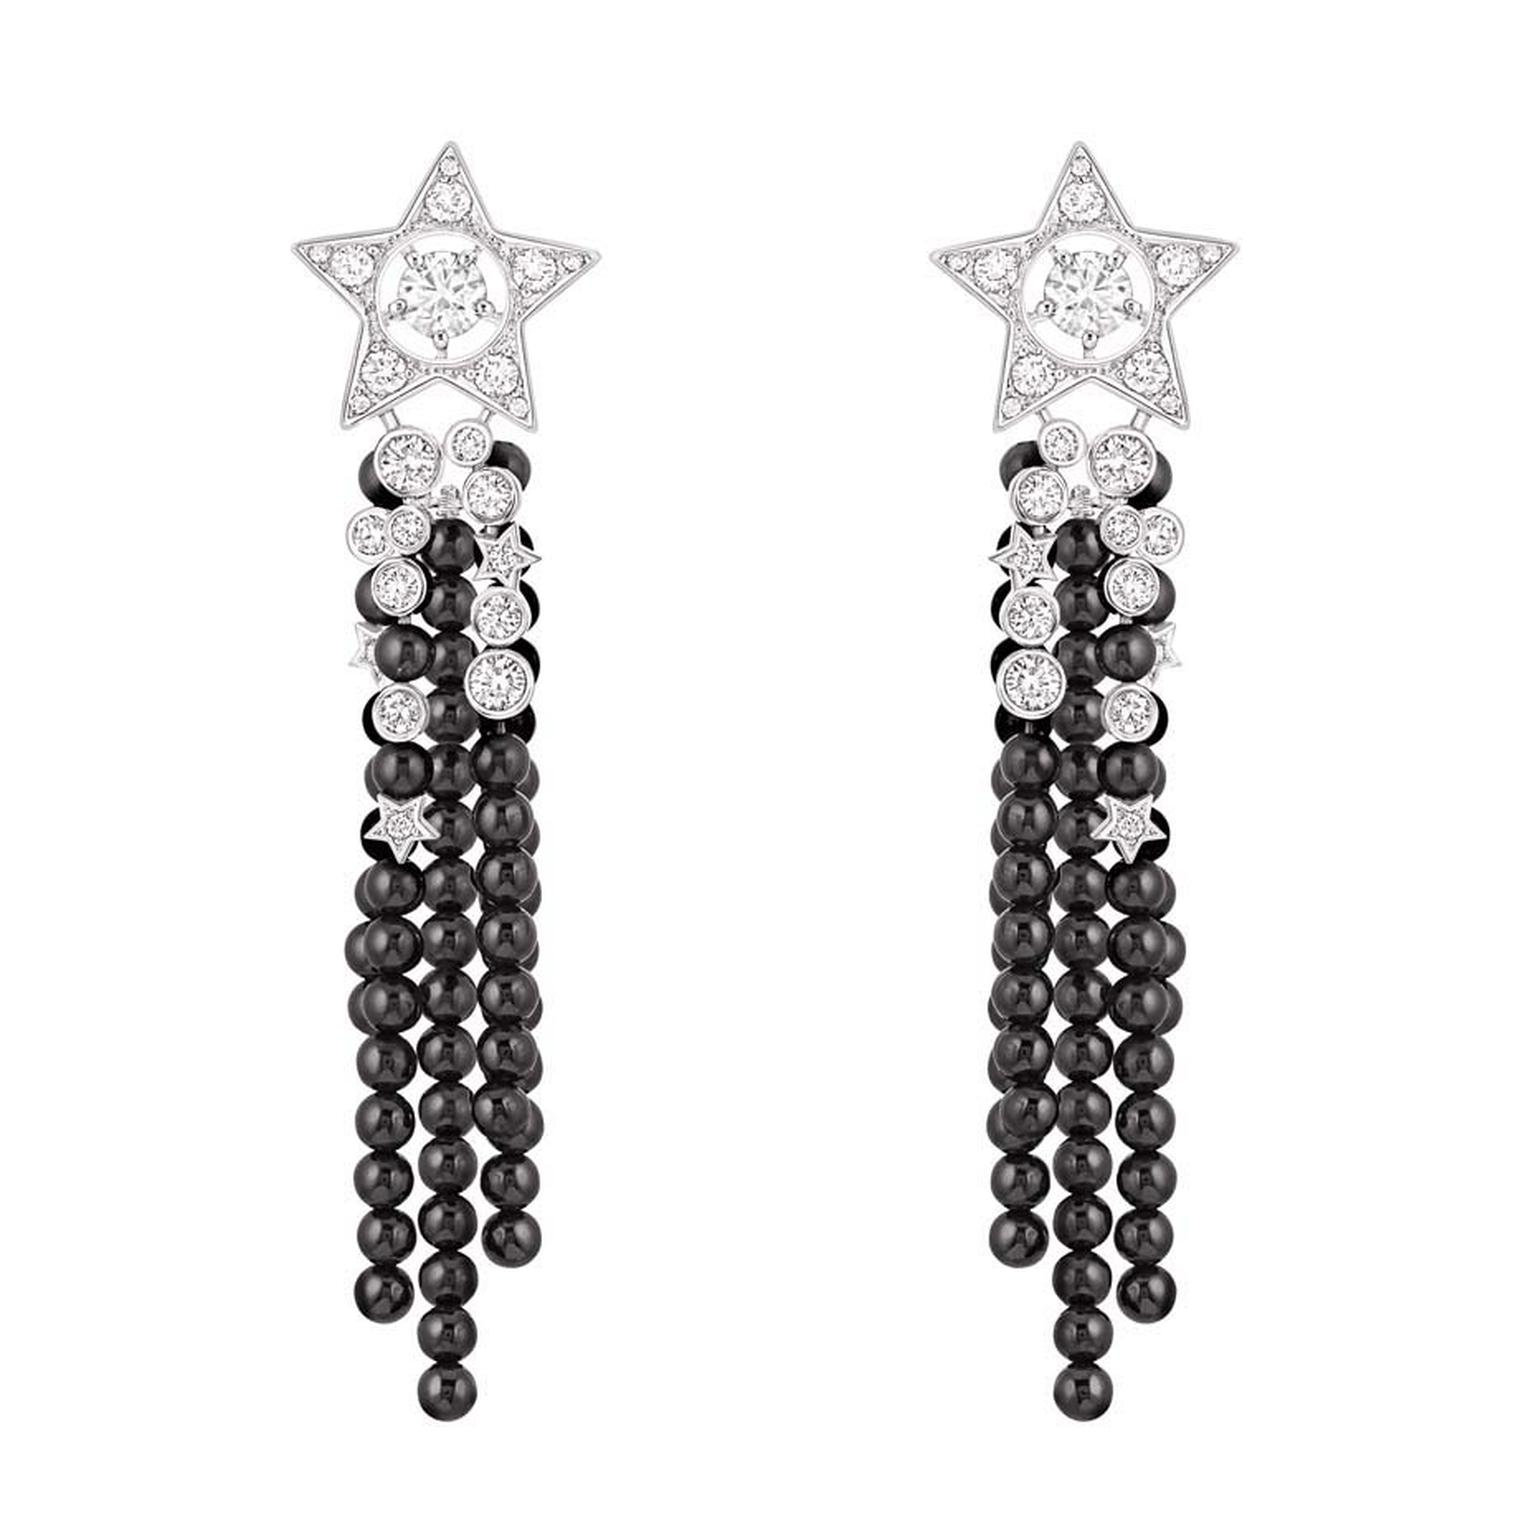 Chanel Nuit de Diamants earrings in white gold with diamonds and black spinel beads.